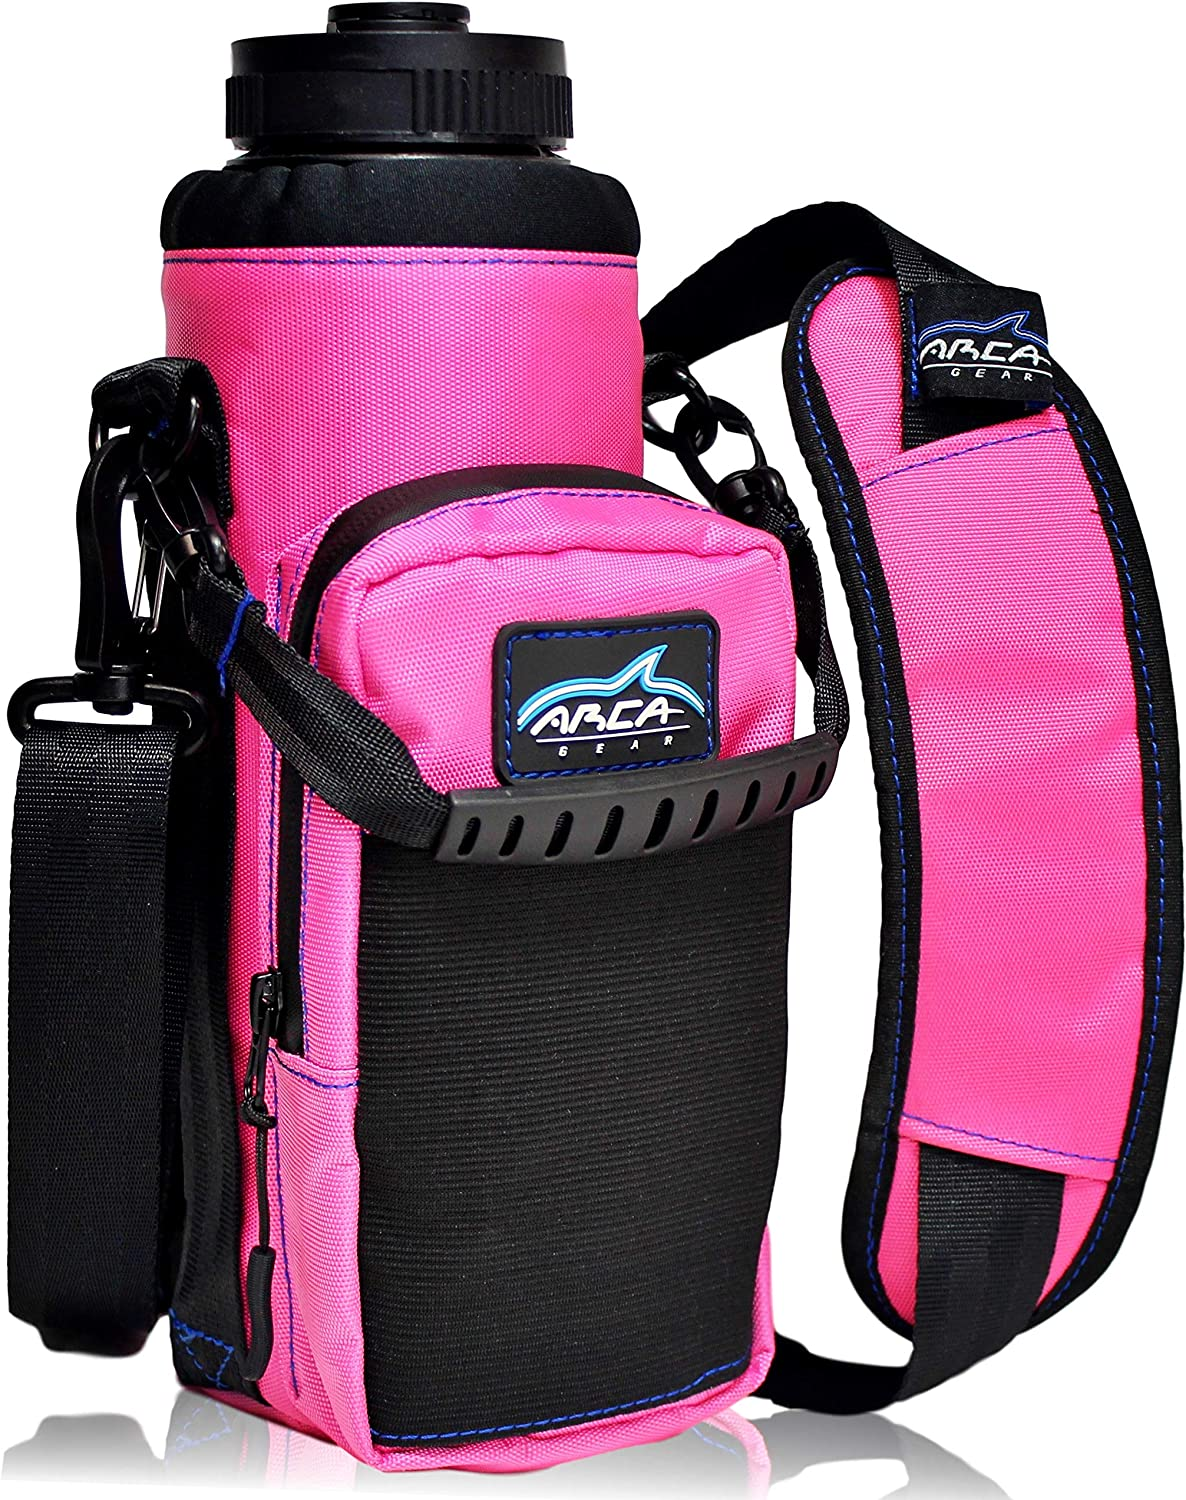 Tulsa Mall Arca Gear 40 oz Hydro Carrier - Water w Bottle Sling C Insulated Fashionable